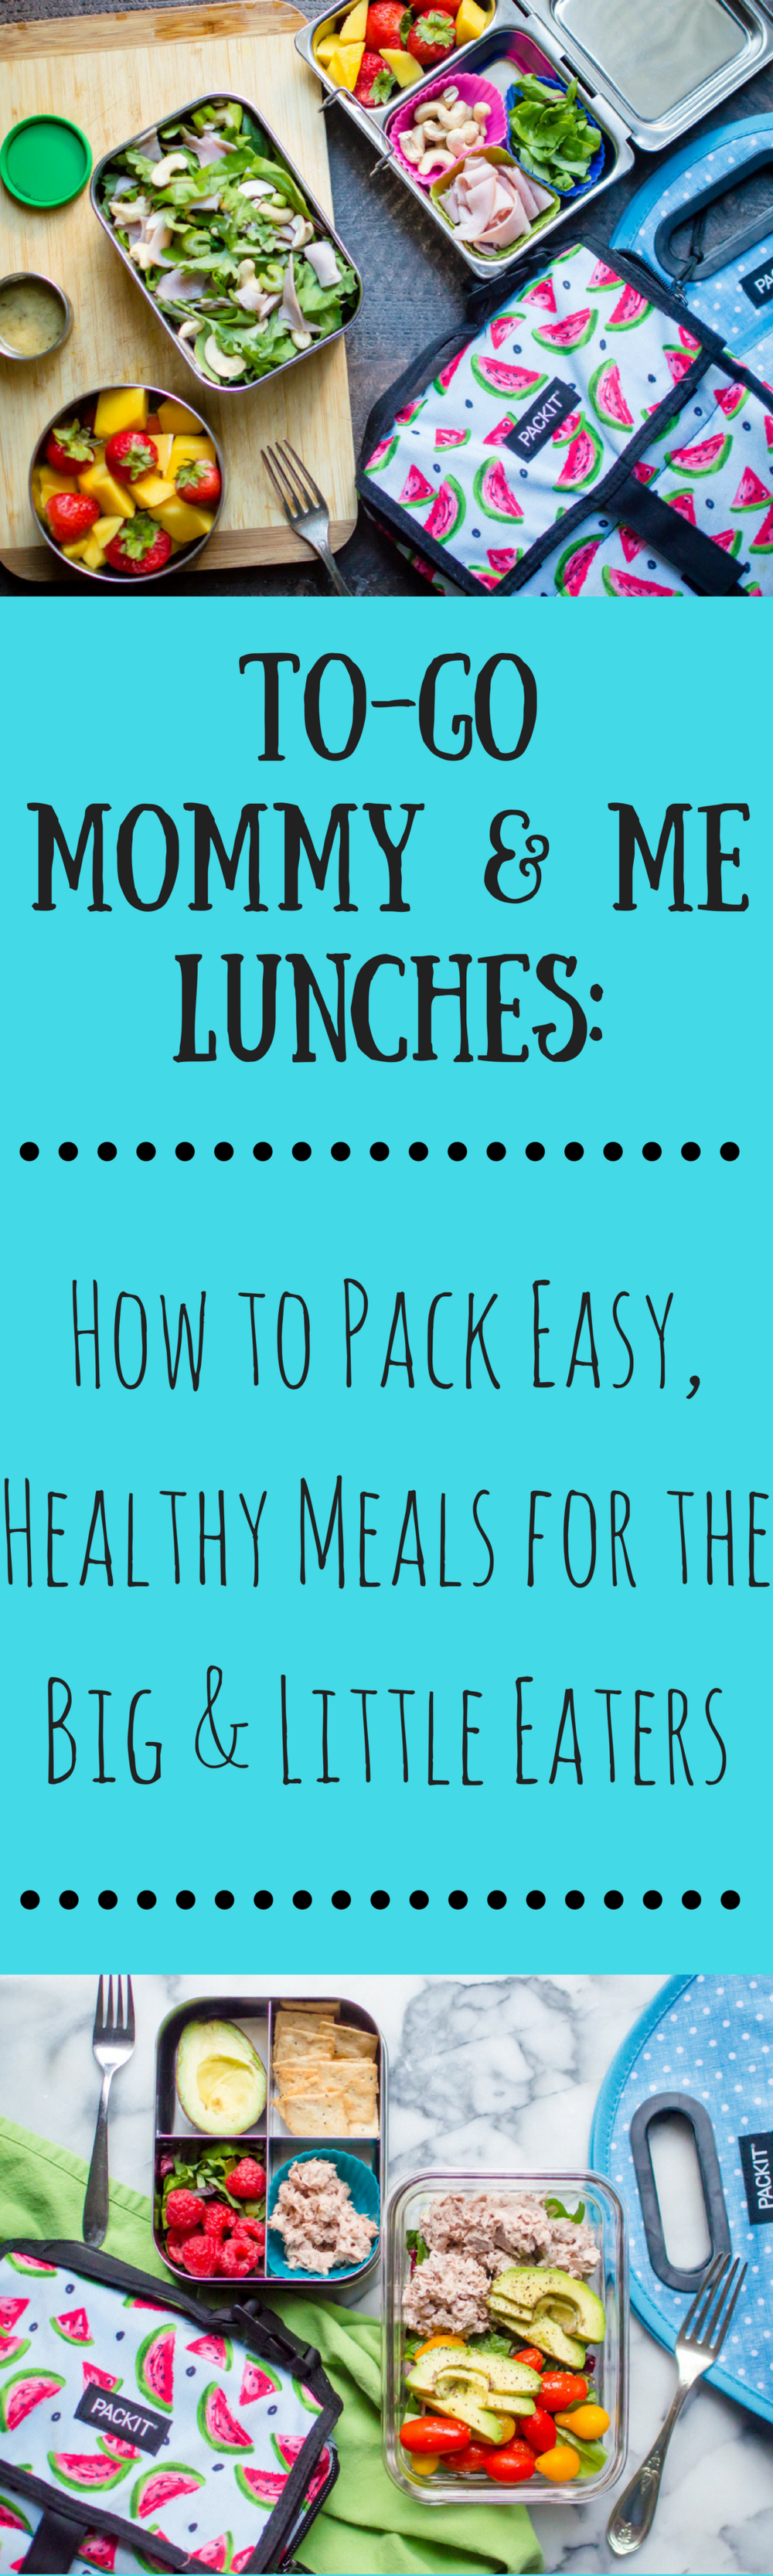 To-Go Mommy & Me Lunches: How to Pack Easy, Healthy Meals for the Big & Little Eaters